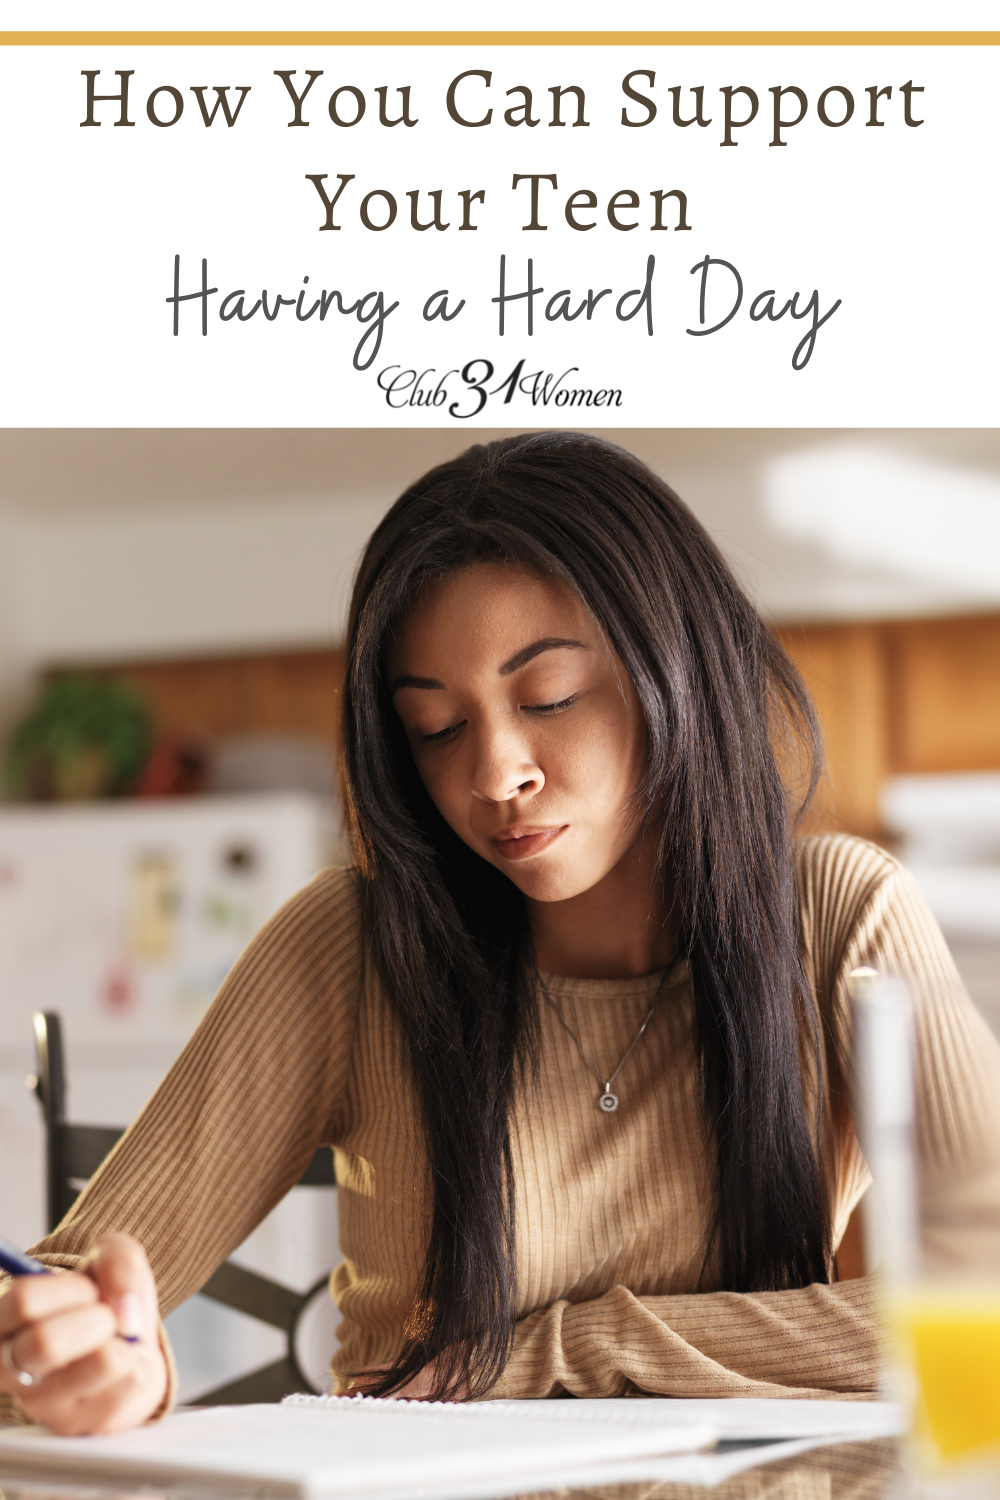 When your teen is stressing or having a hard day, how can you help them? Offer solutions? Give them space? via @Club31Women